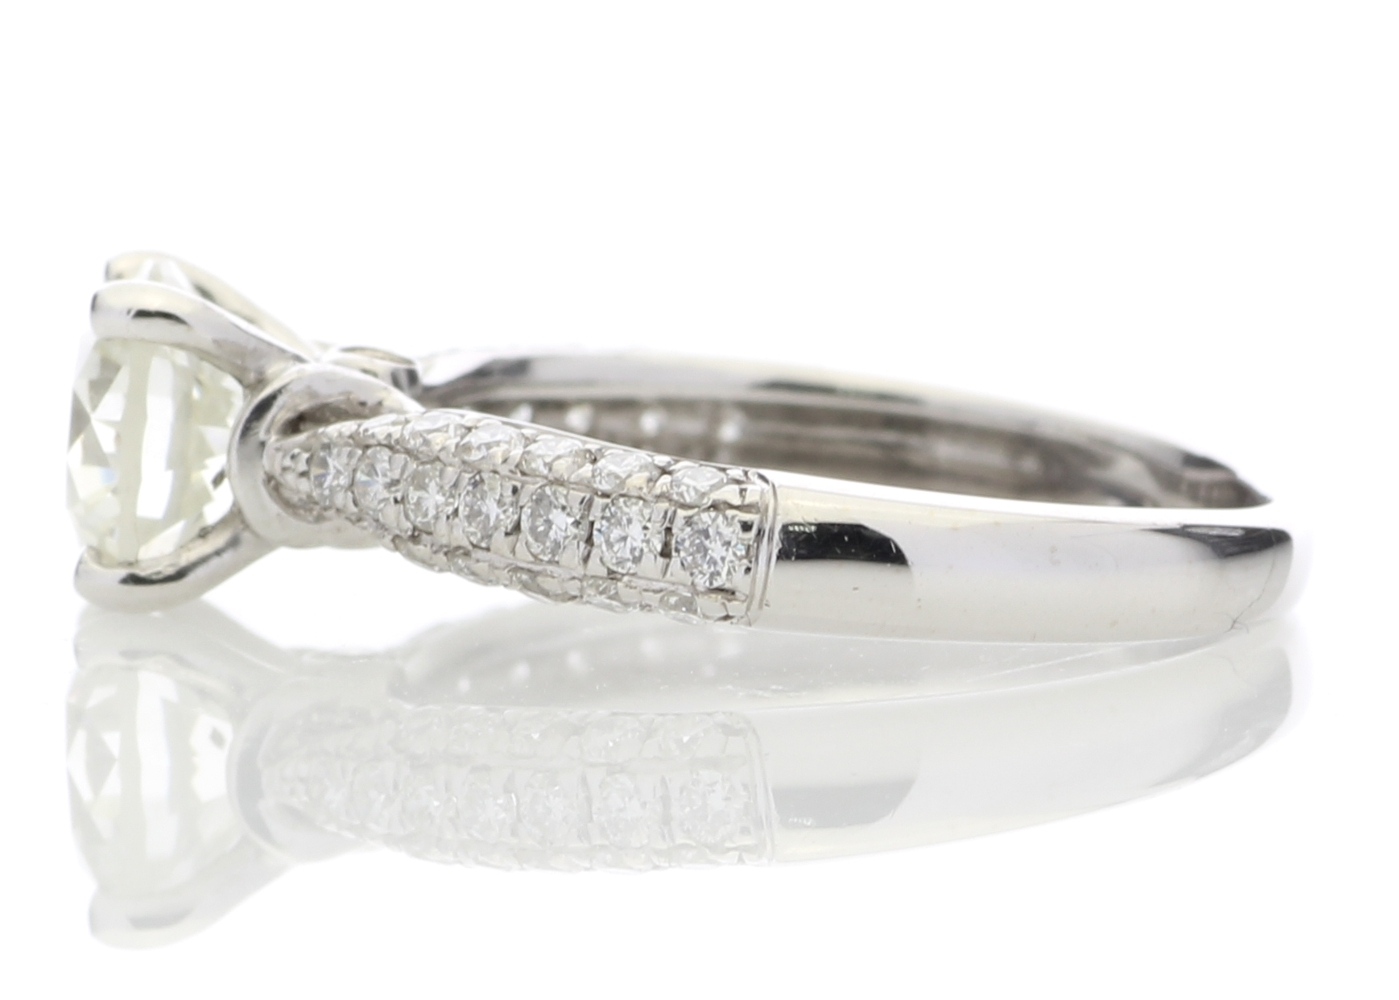 Lot 18 - 18ct White Gold Diamond Ring With Stone Set Shoulders 1.38 Carats